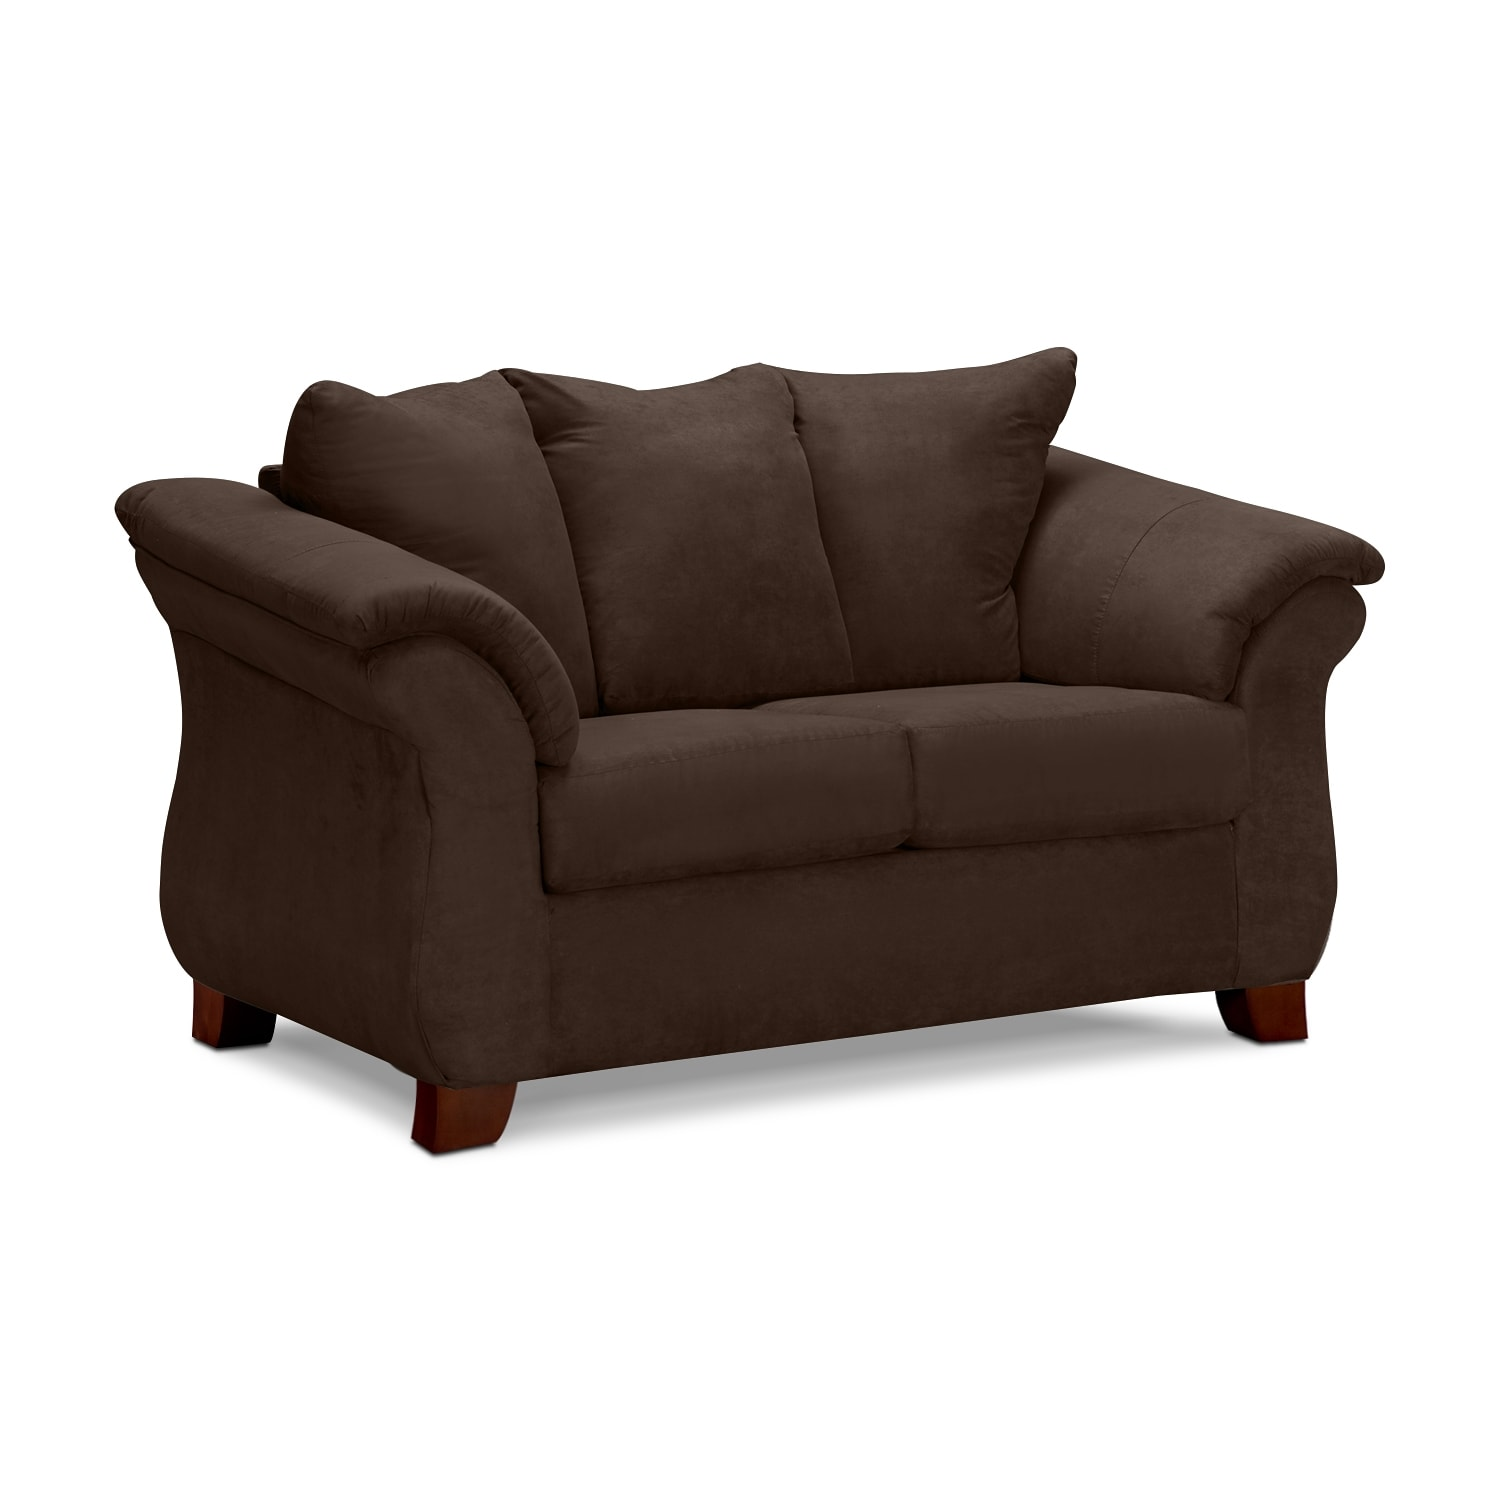 Adrian Chocolate Loveseat Value City Furniture